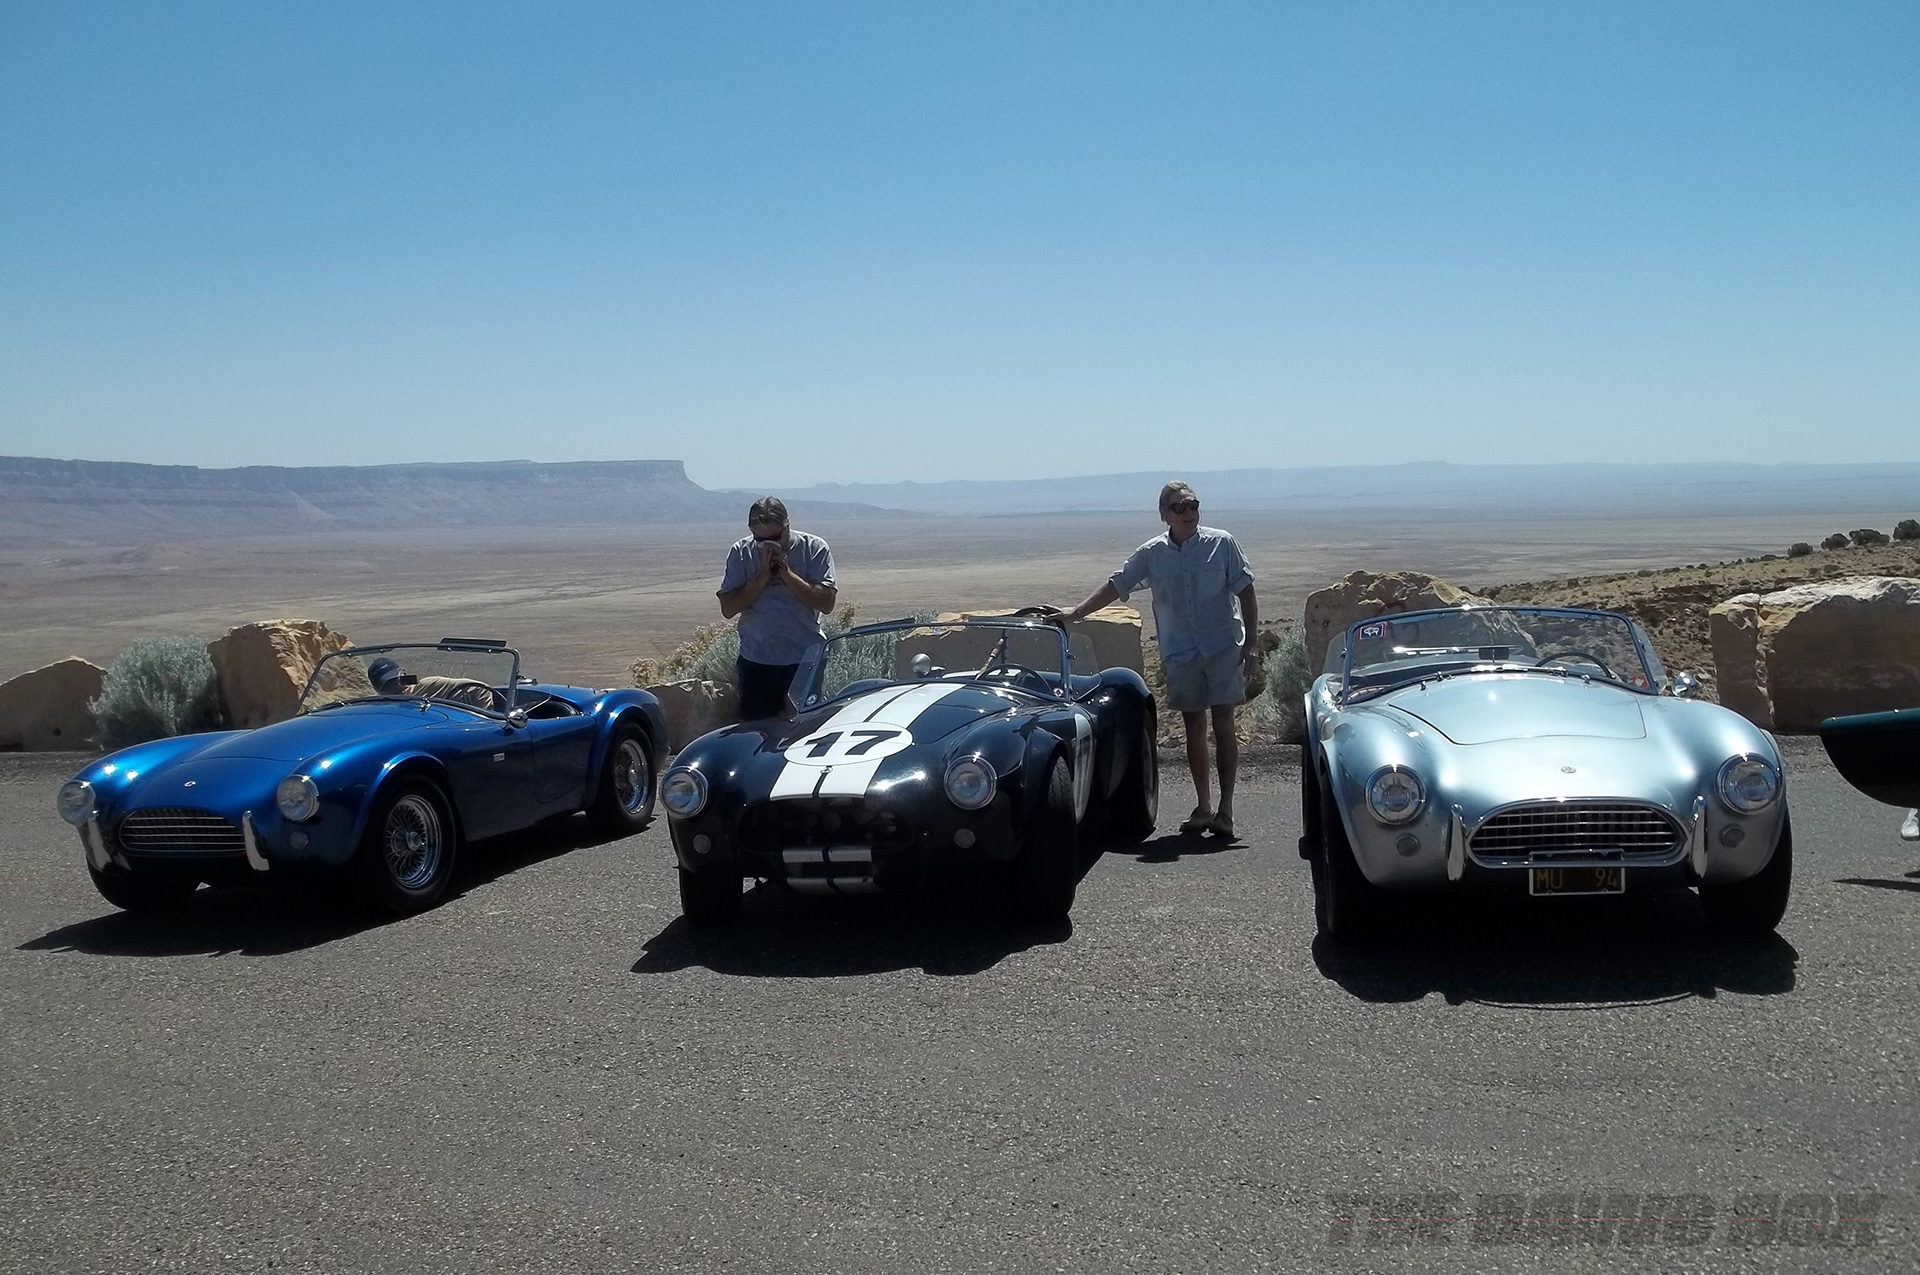 Blue, Black, and silver Shelby AC Cobras posed at the Grand Canyon